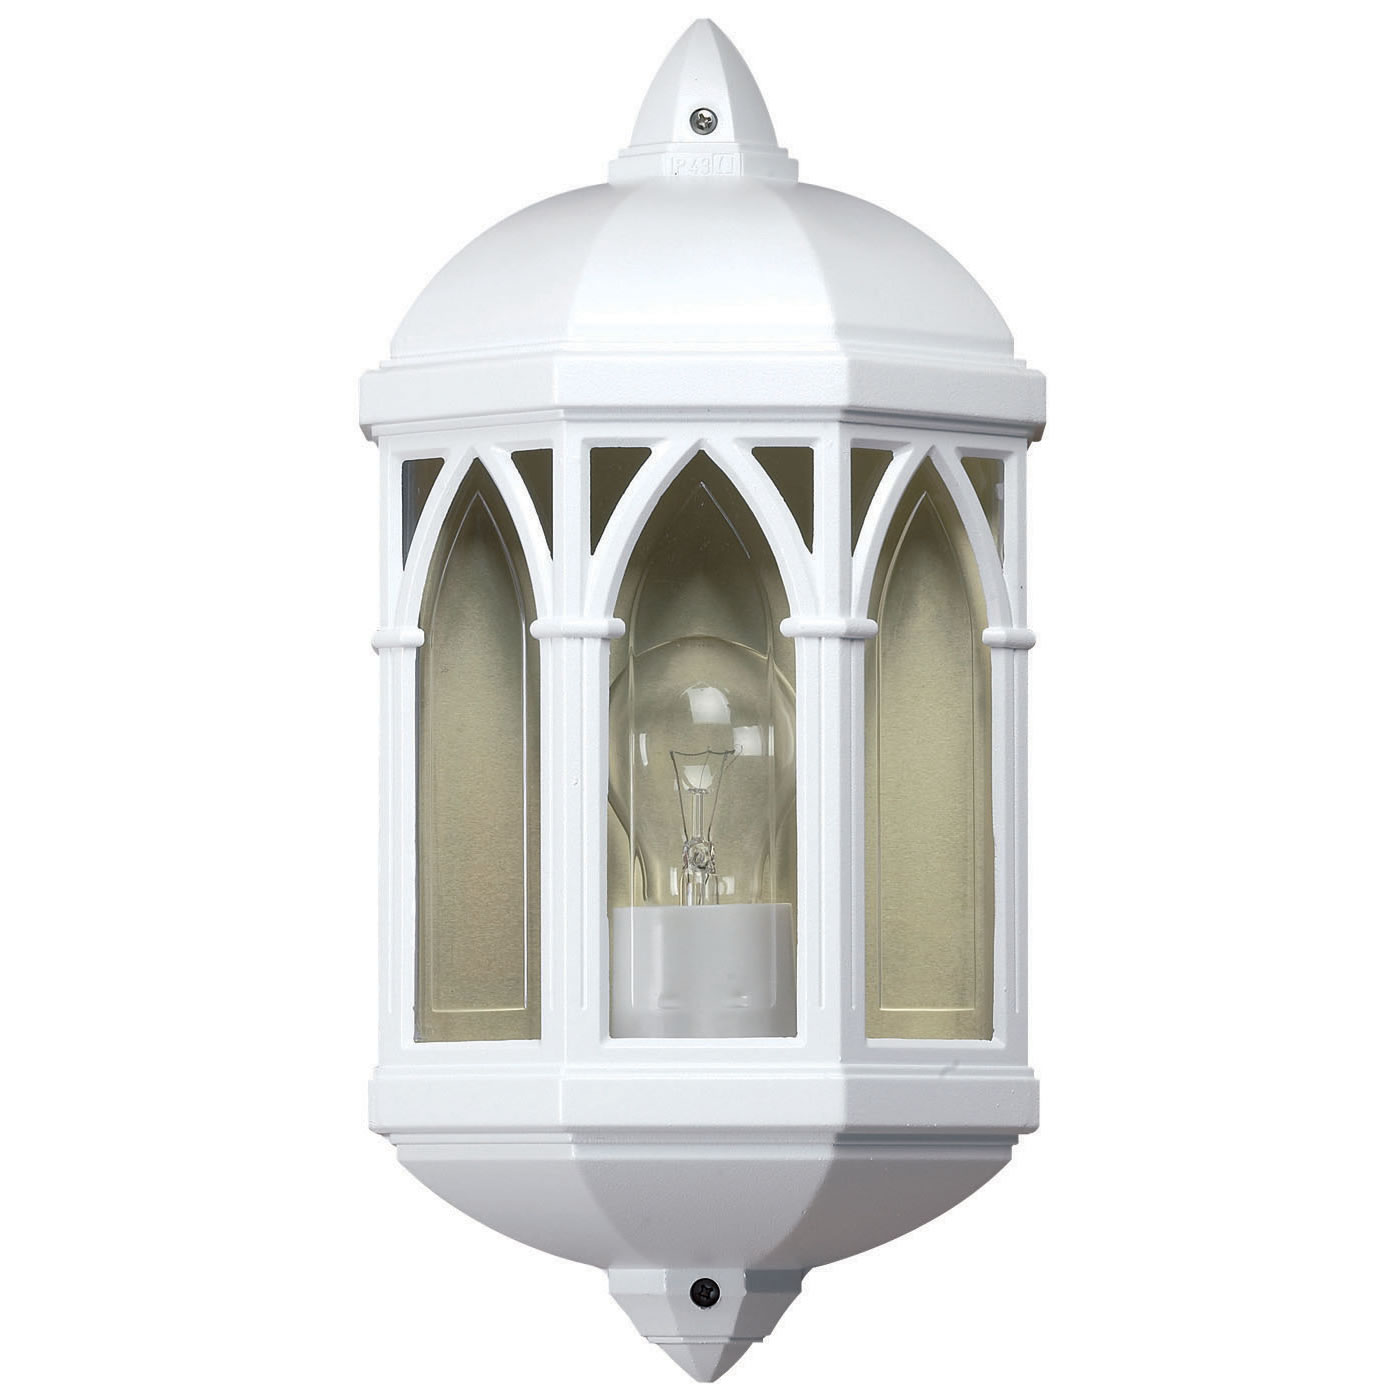 Wall Lantern Light Fixture : 10 benefits of White outdoor wall light fixtures Warisan Lighting